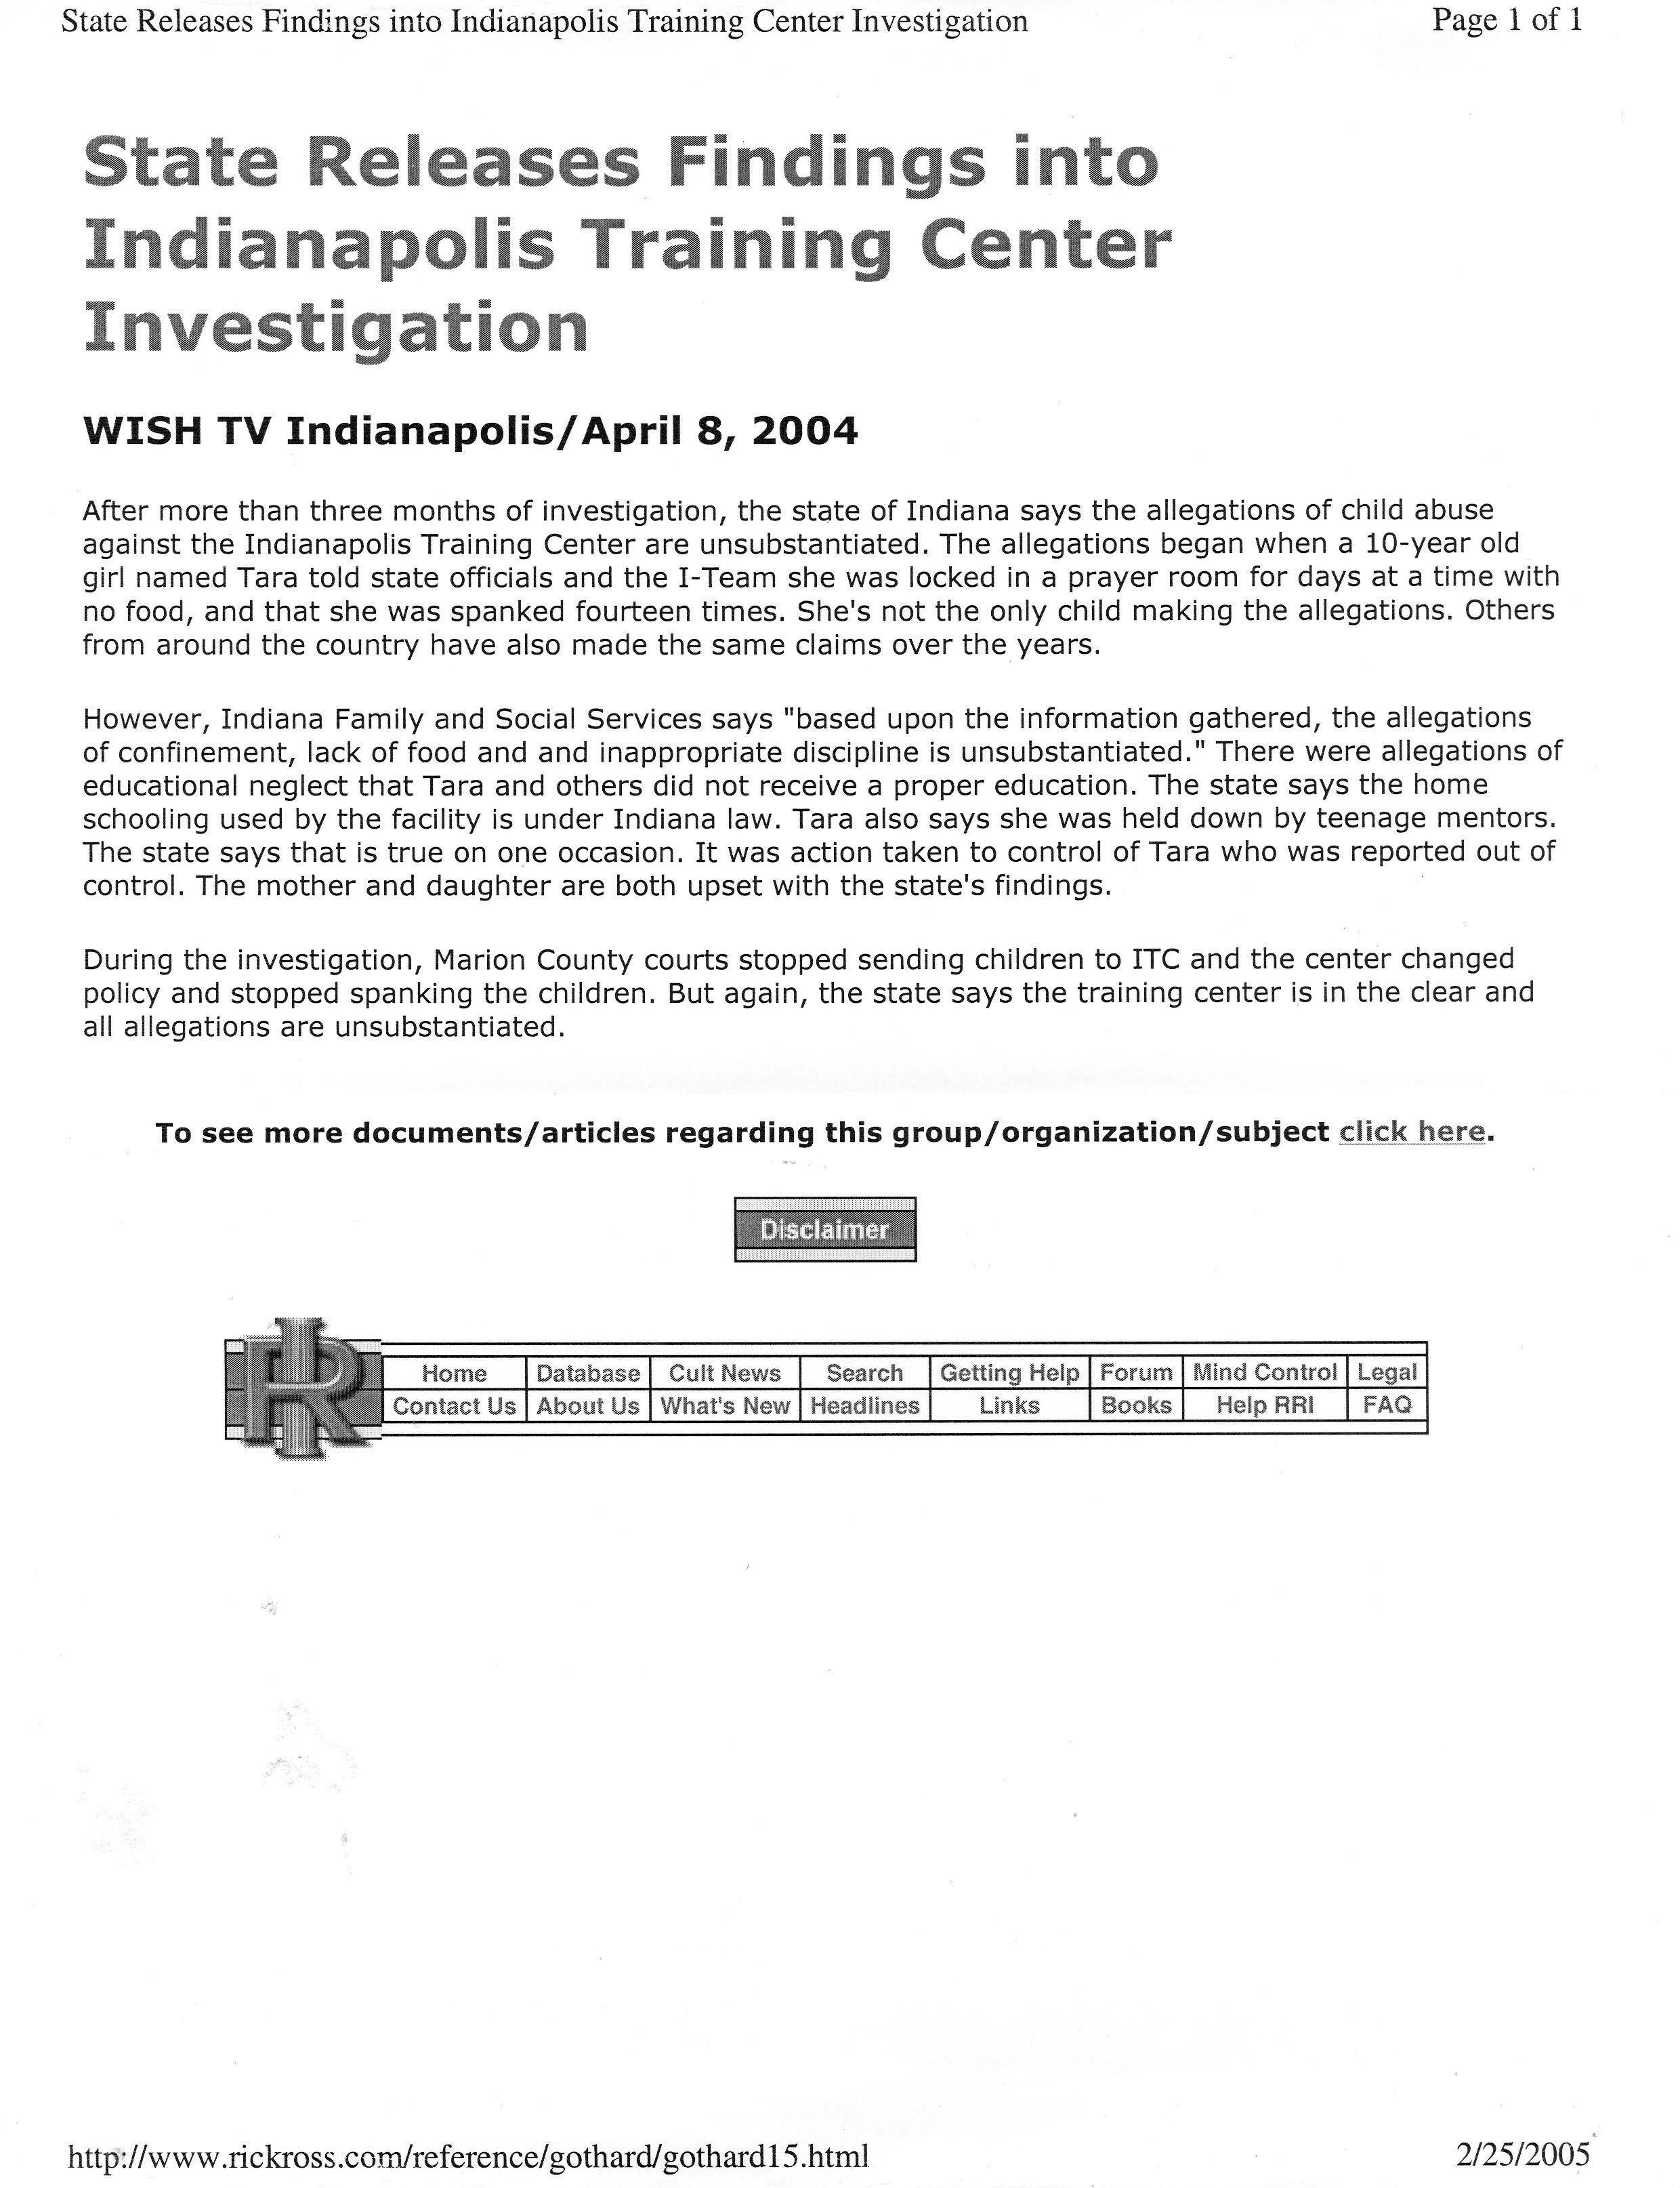 State of Indiana Investigation into the ITC